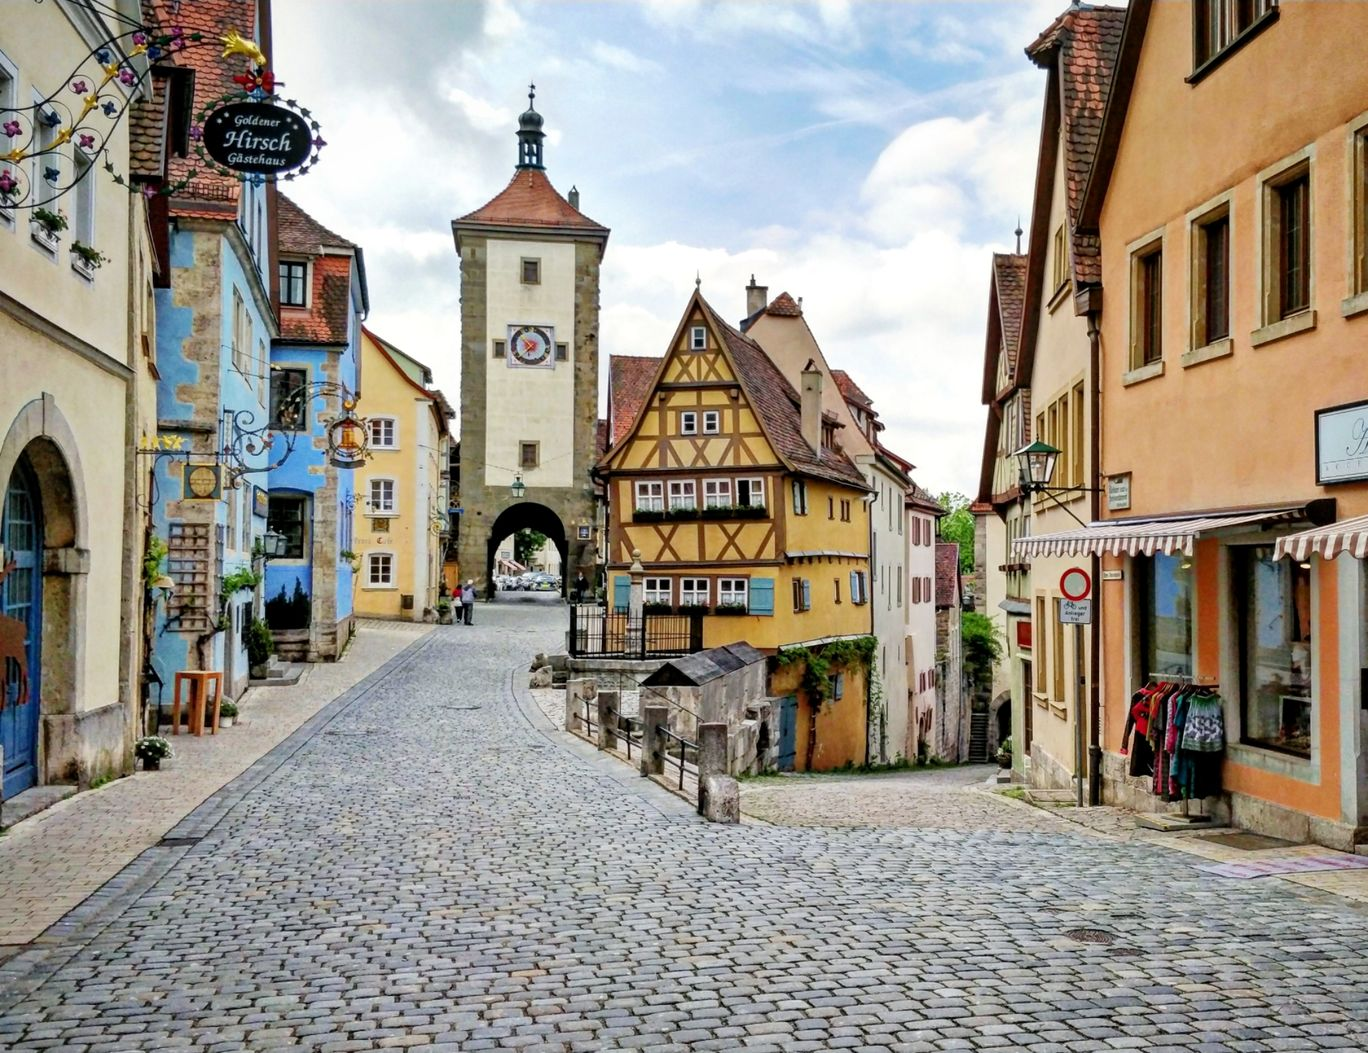 Photo of Rothenburg ob der Tauber By Vivek Prabhu